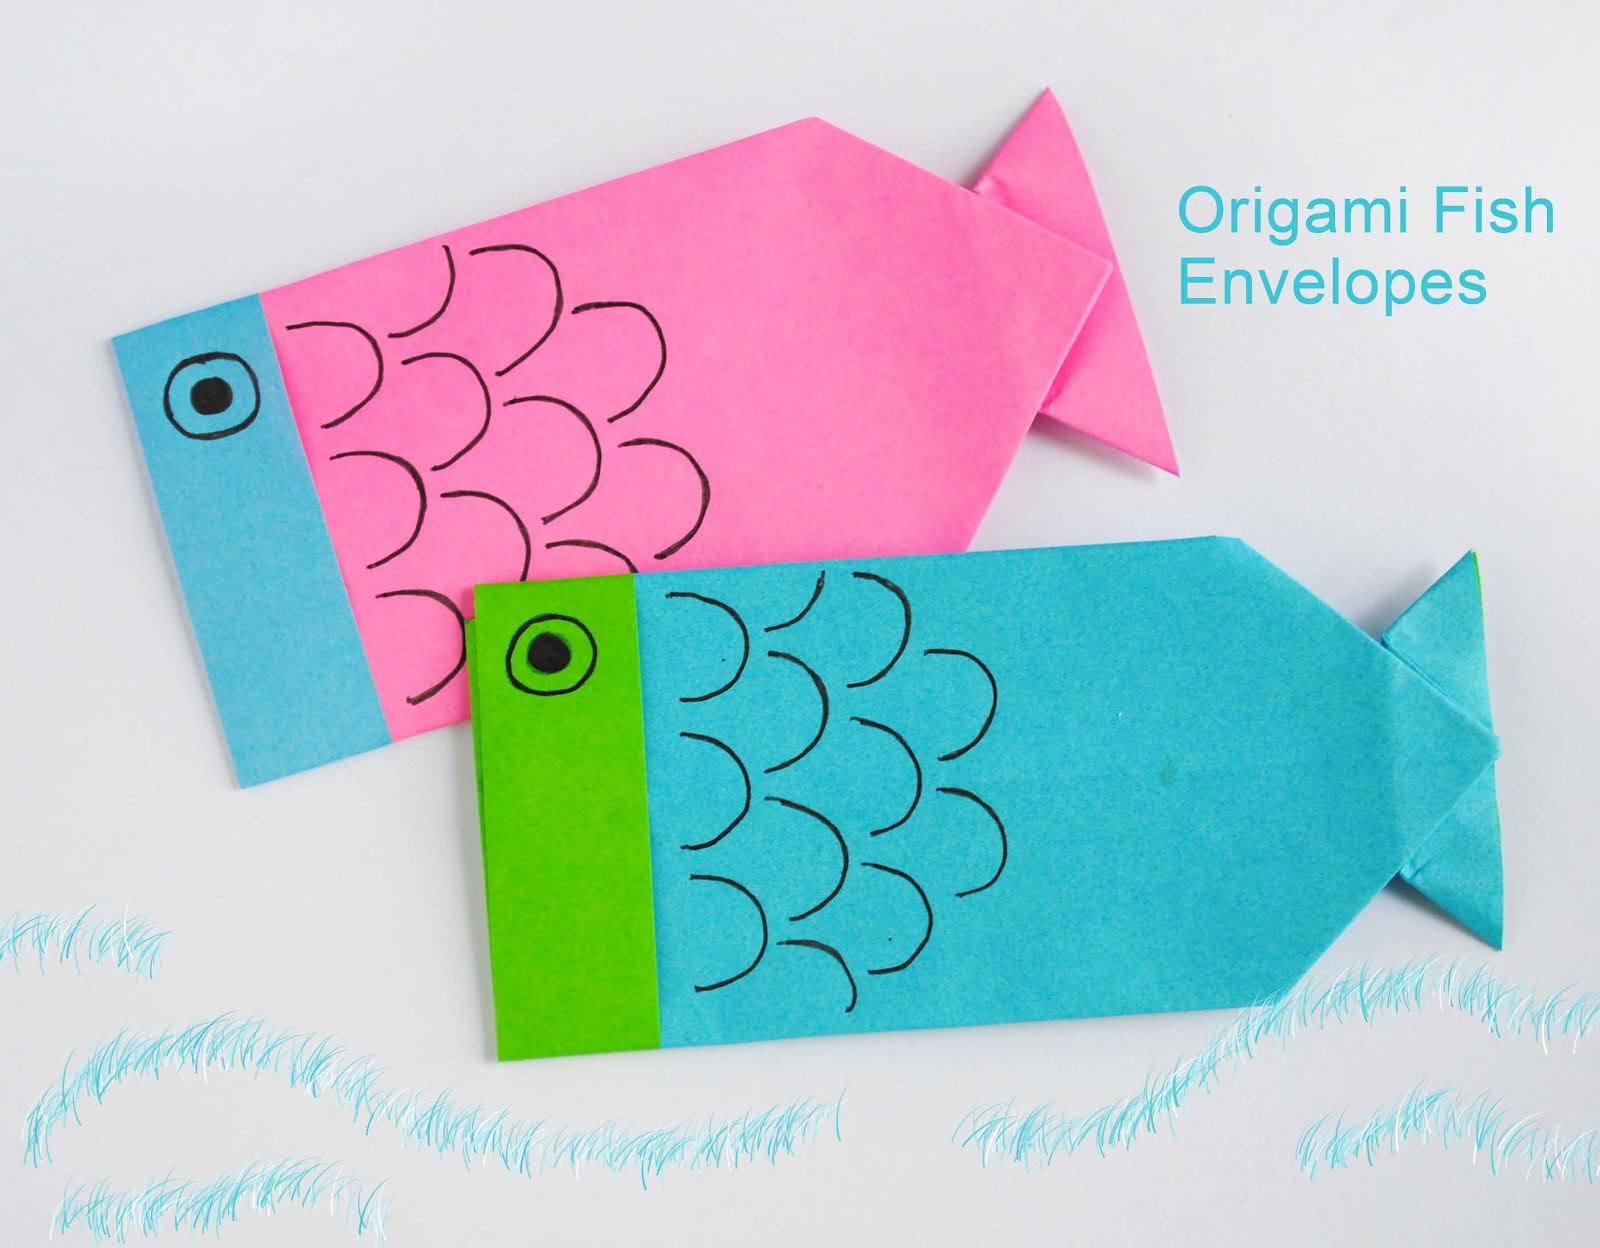 zakka life: Origami Fish Envelopes - photo#22